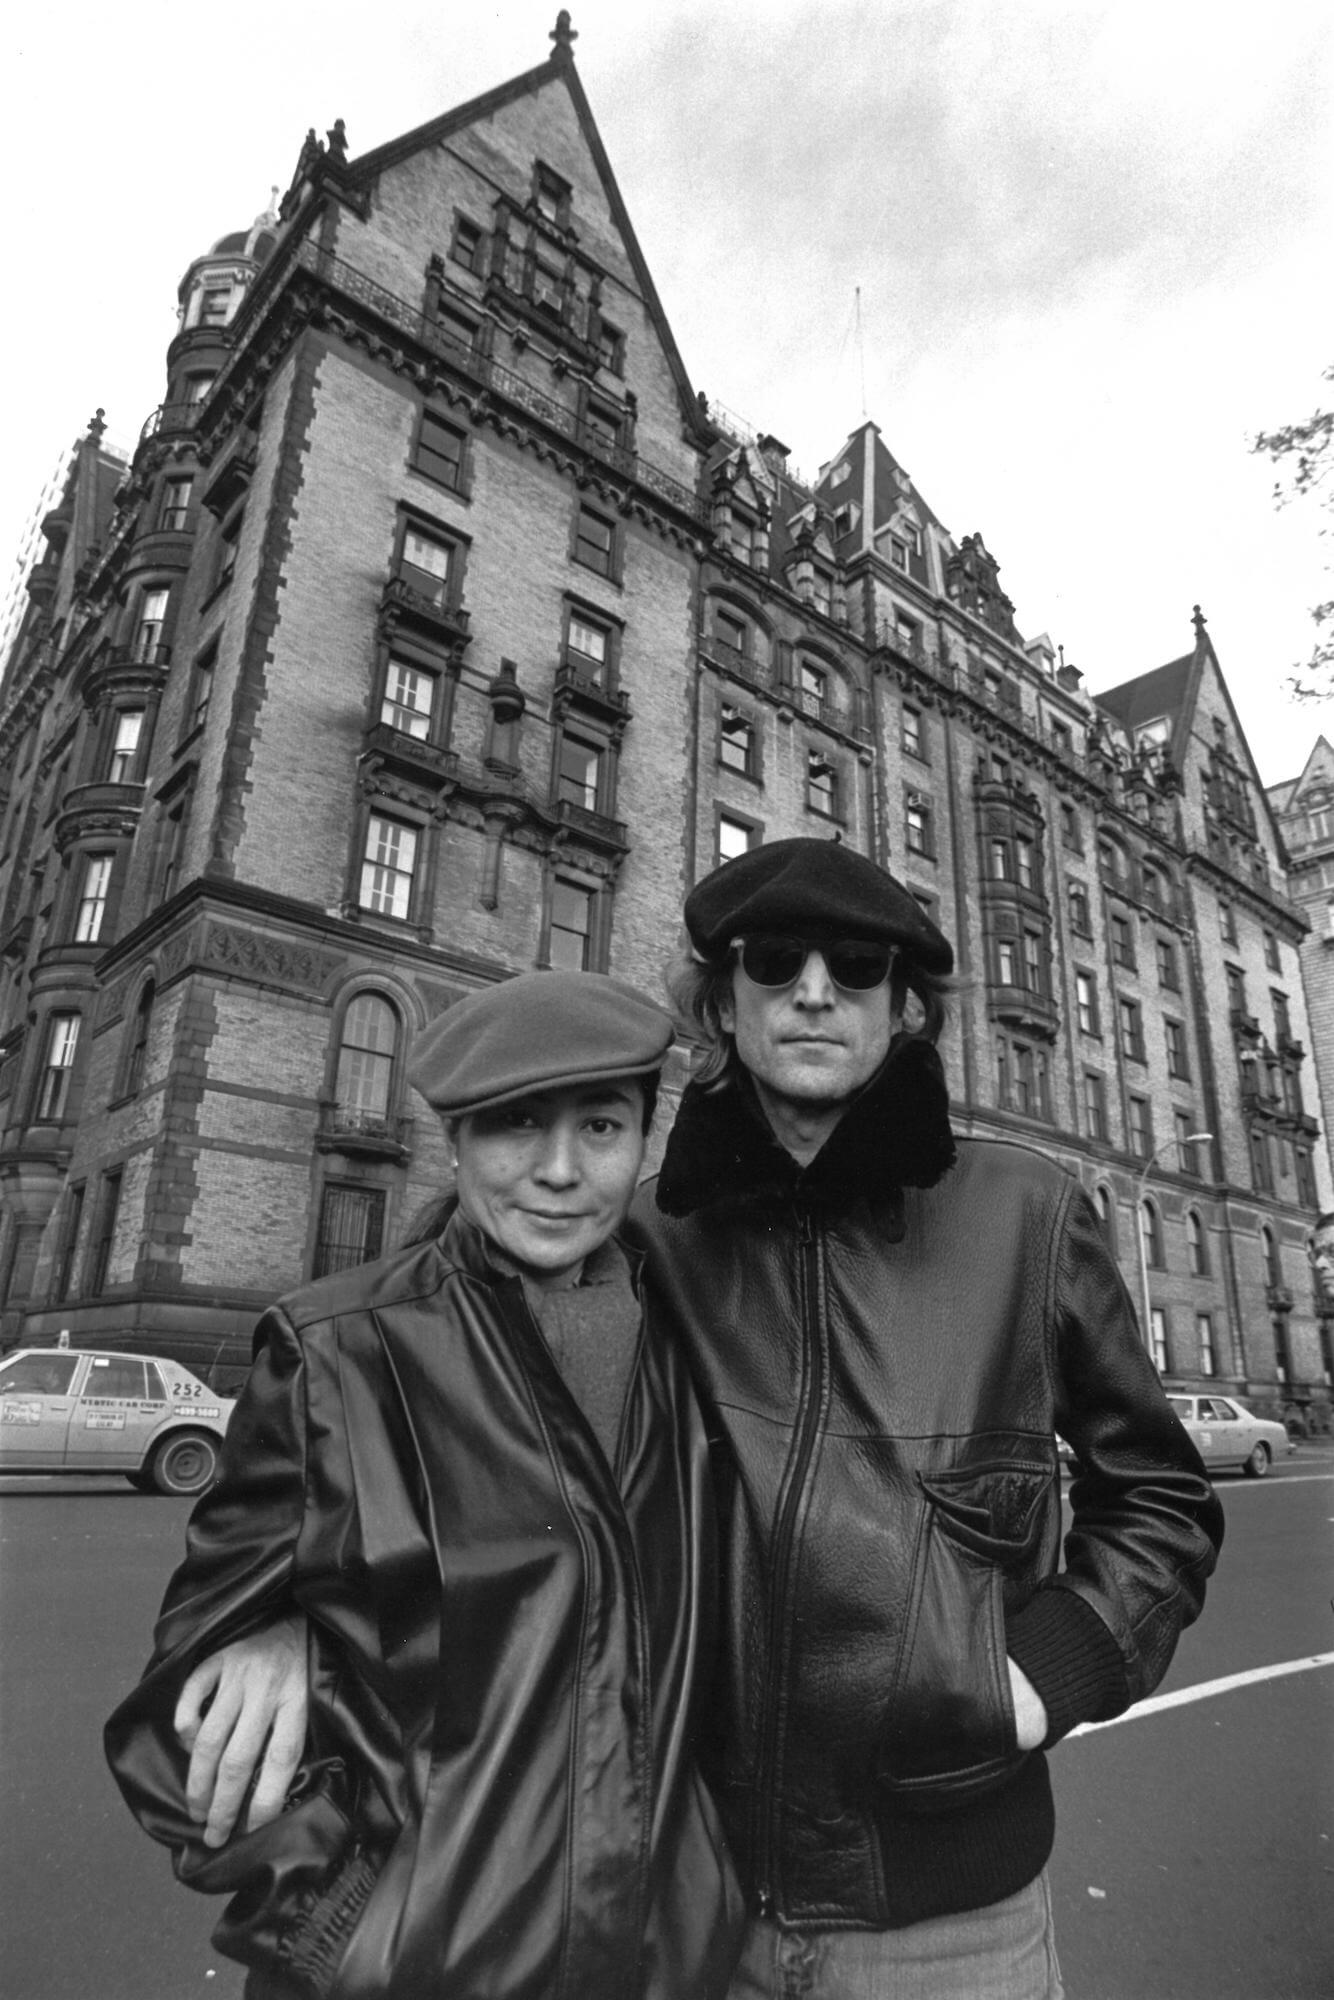 John Lennon and Yoko Ono Outside The Dakota, 1980